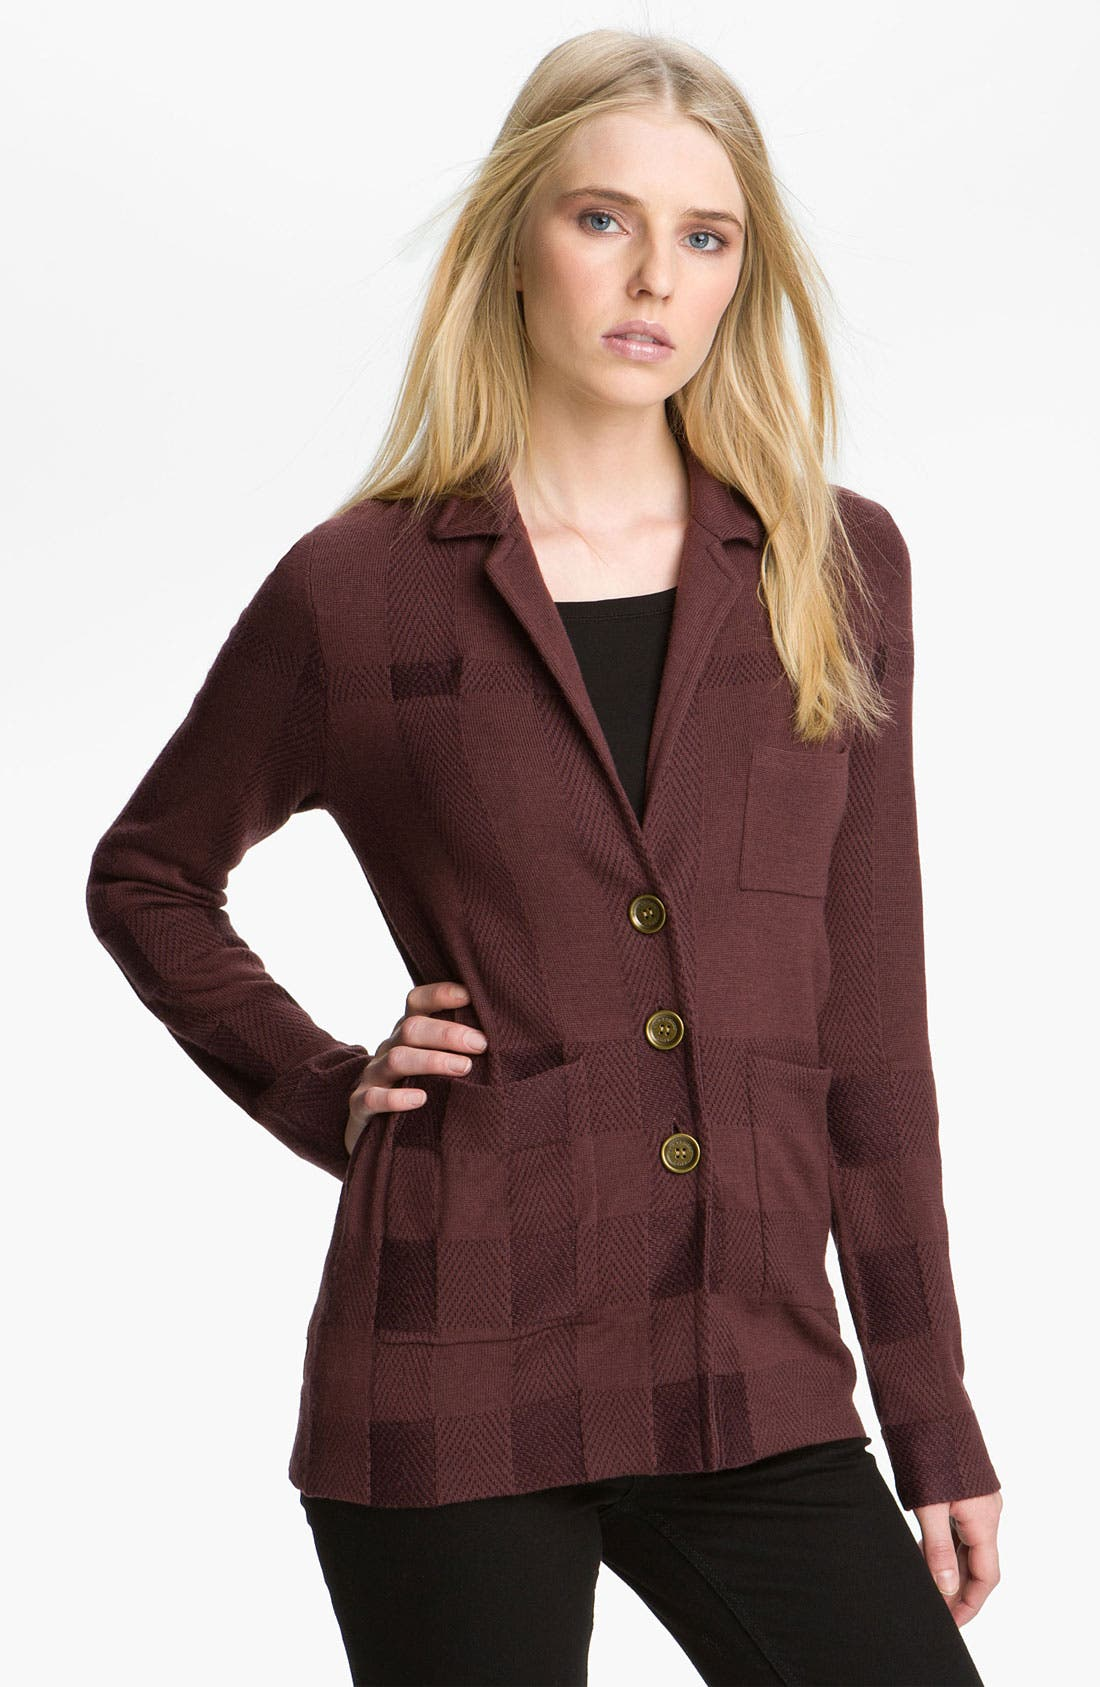 Alternate Image 1 Selected - Burberry Brit Jacquard Check Cardigan (Online Exclusive)